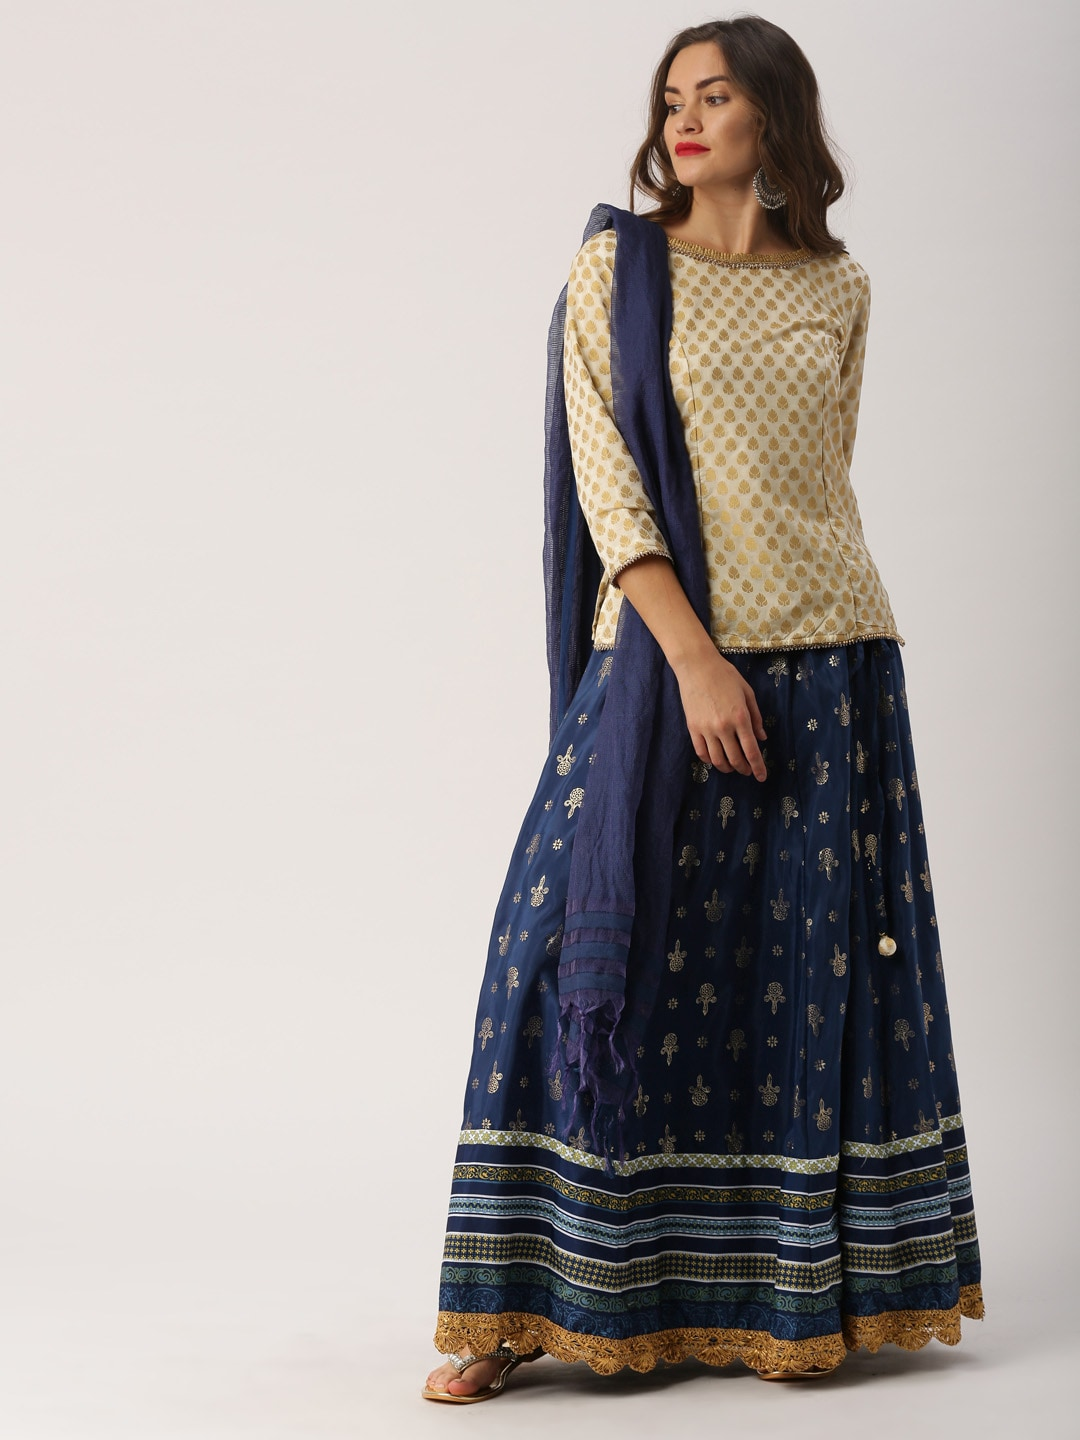 IMARA by Off-White & Navy Printed Lehenga Choli with Dupatta image